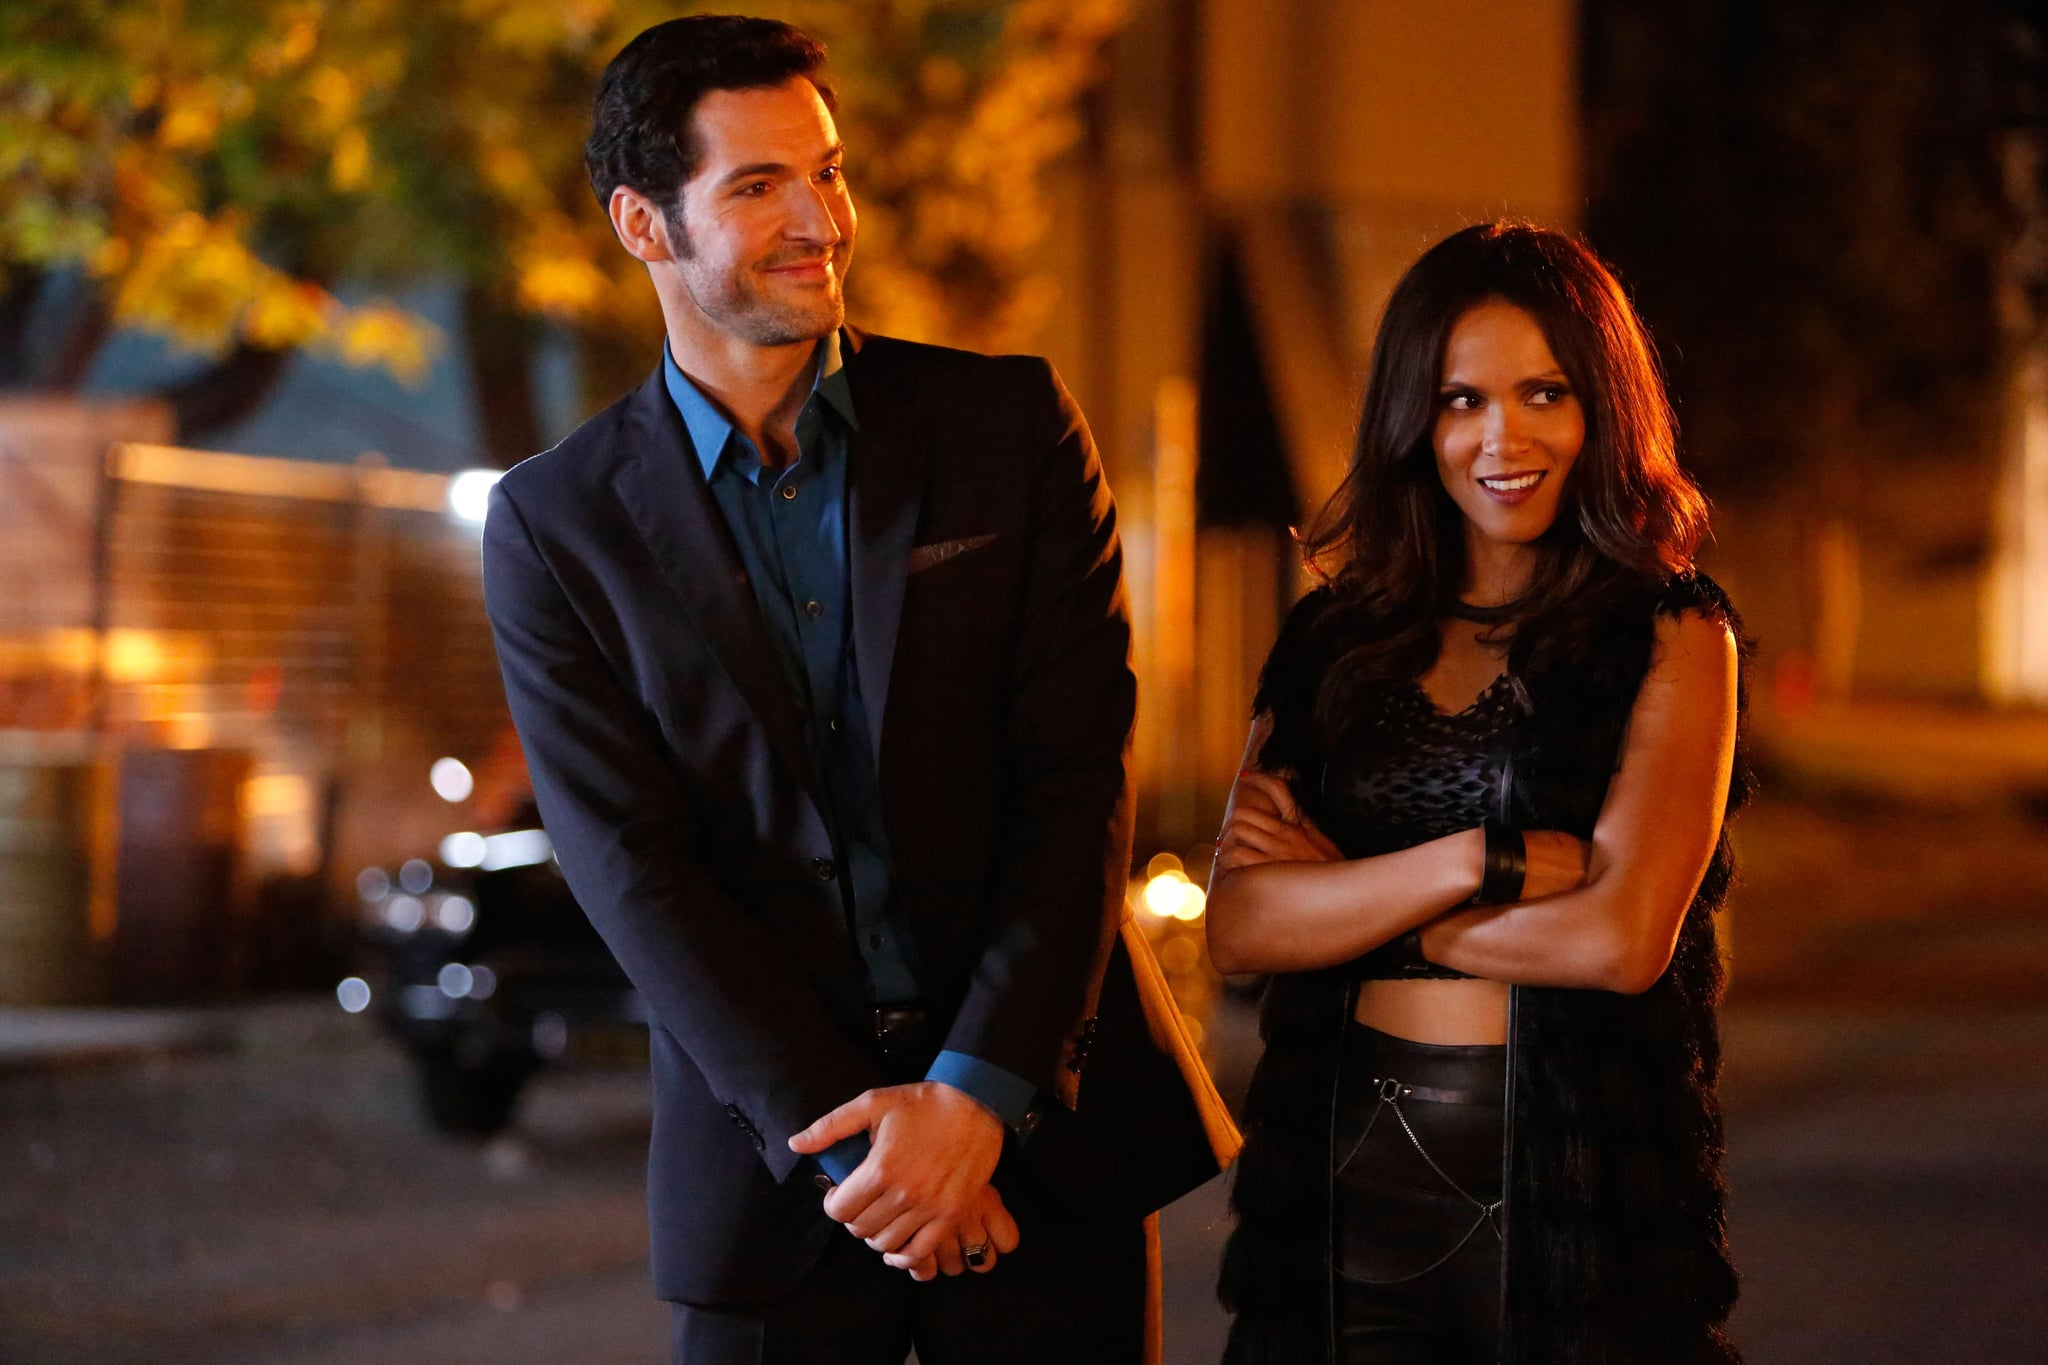 LUCIFER, l-r: Tom Ellis, Lesley-Ann Brandt in 'Lucifer, Stay, Good Devil' (Season 1, Episode 2, aired February 1, 2016). ph: Bettina Strauss/Fox/courtesy Everett Collection